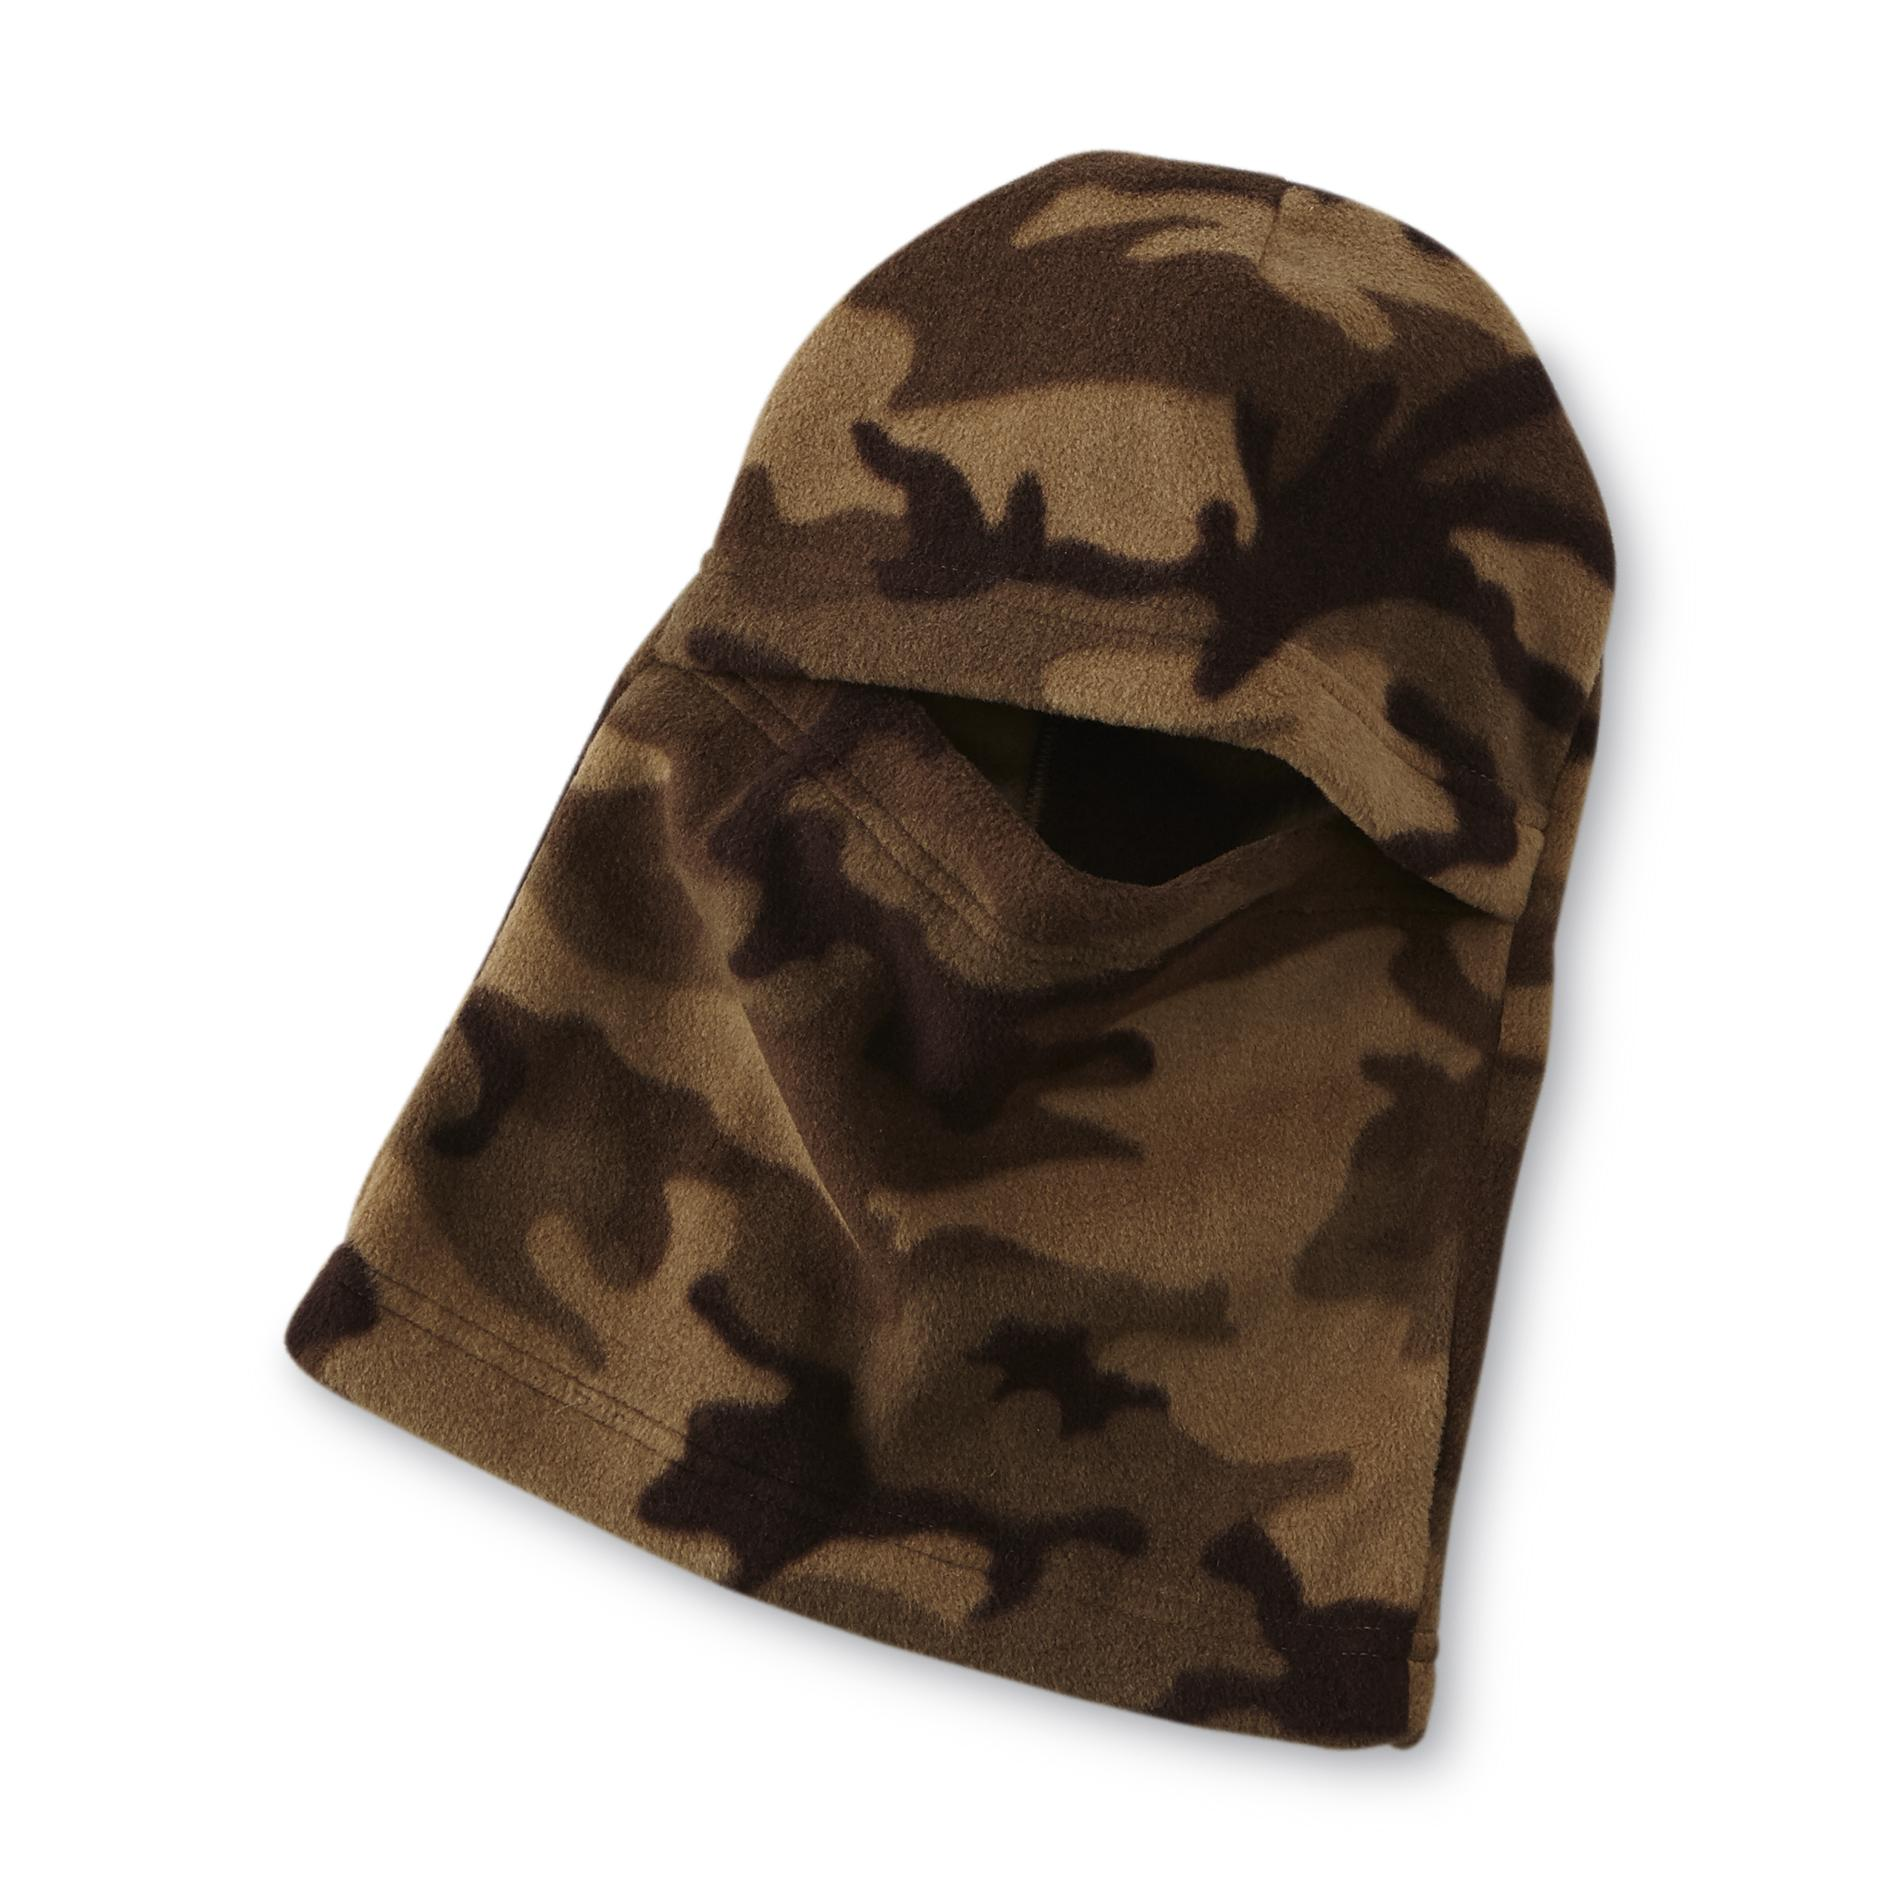 Athletech Boy's Microfleece Face Mask - Camouflage